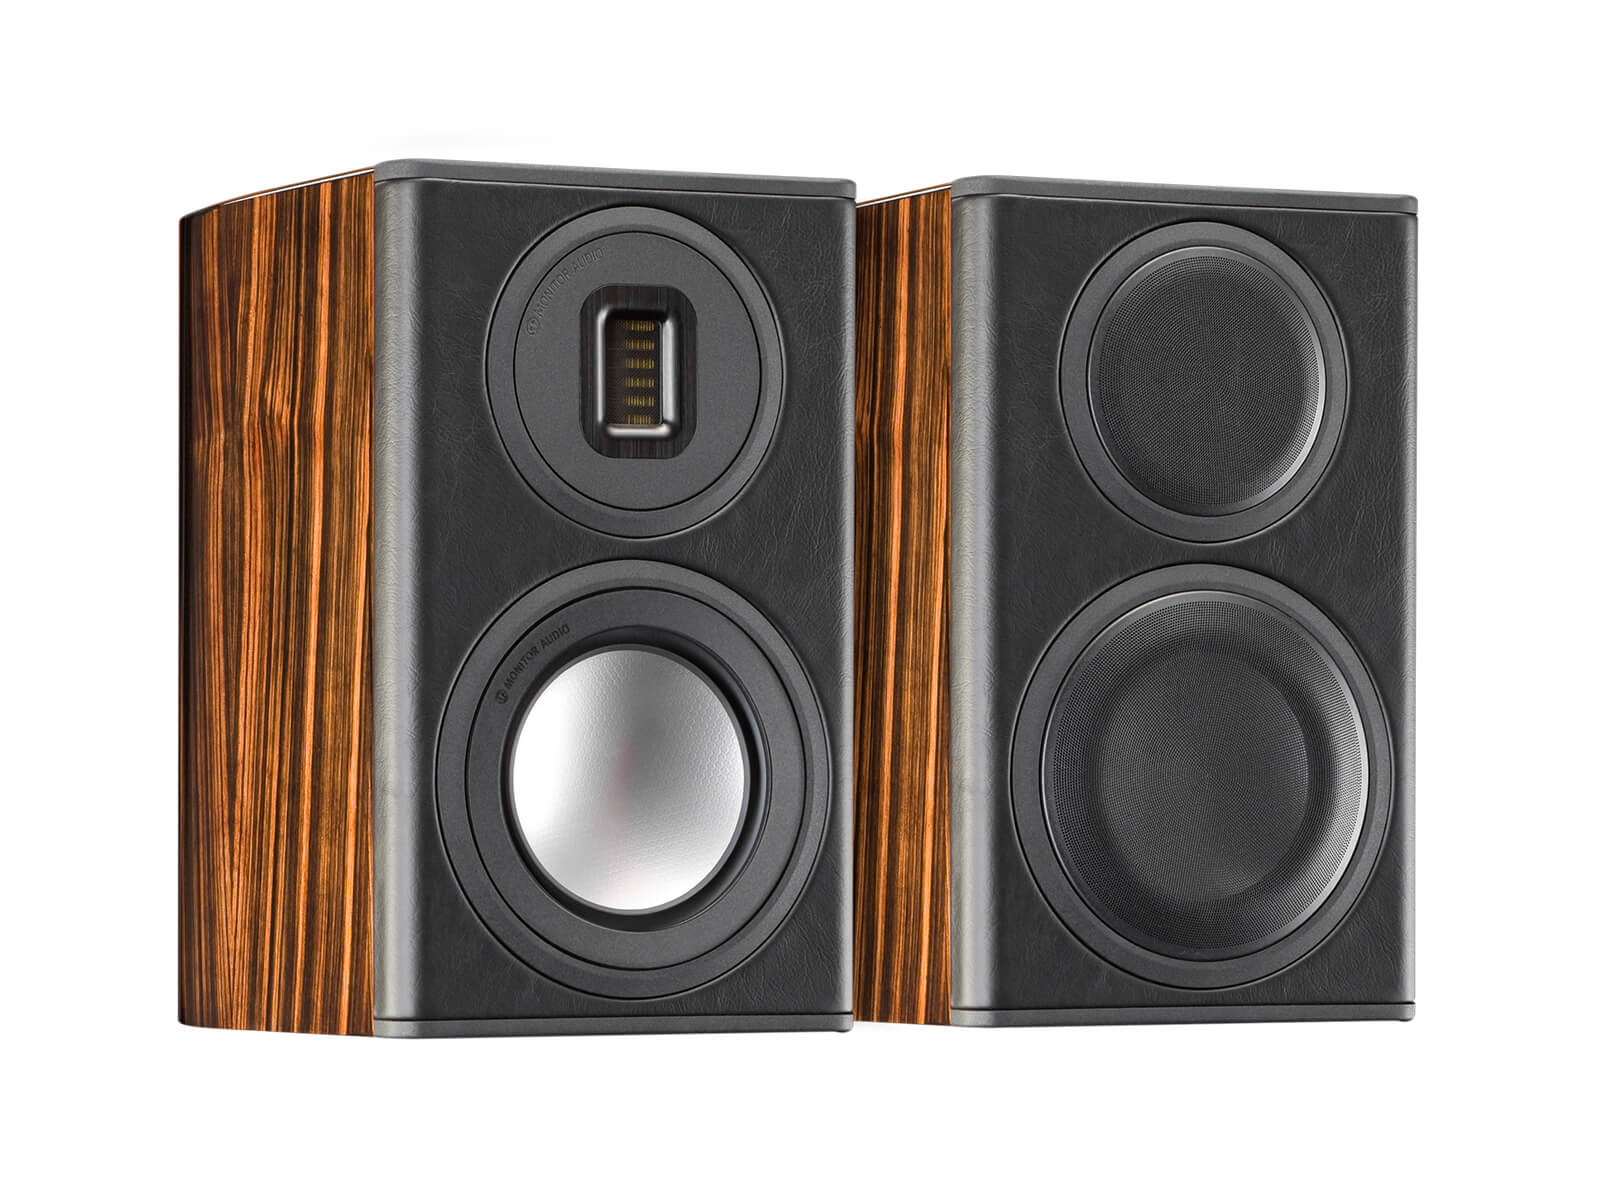 Platinum PL100 II, grille-less bookshelf speakers, with an ebony real wood veneer finish.